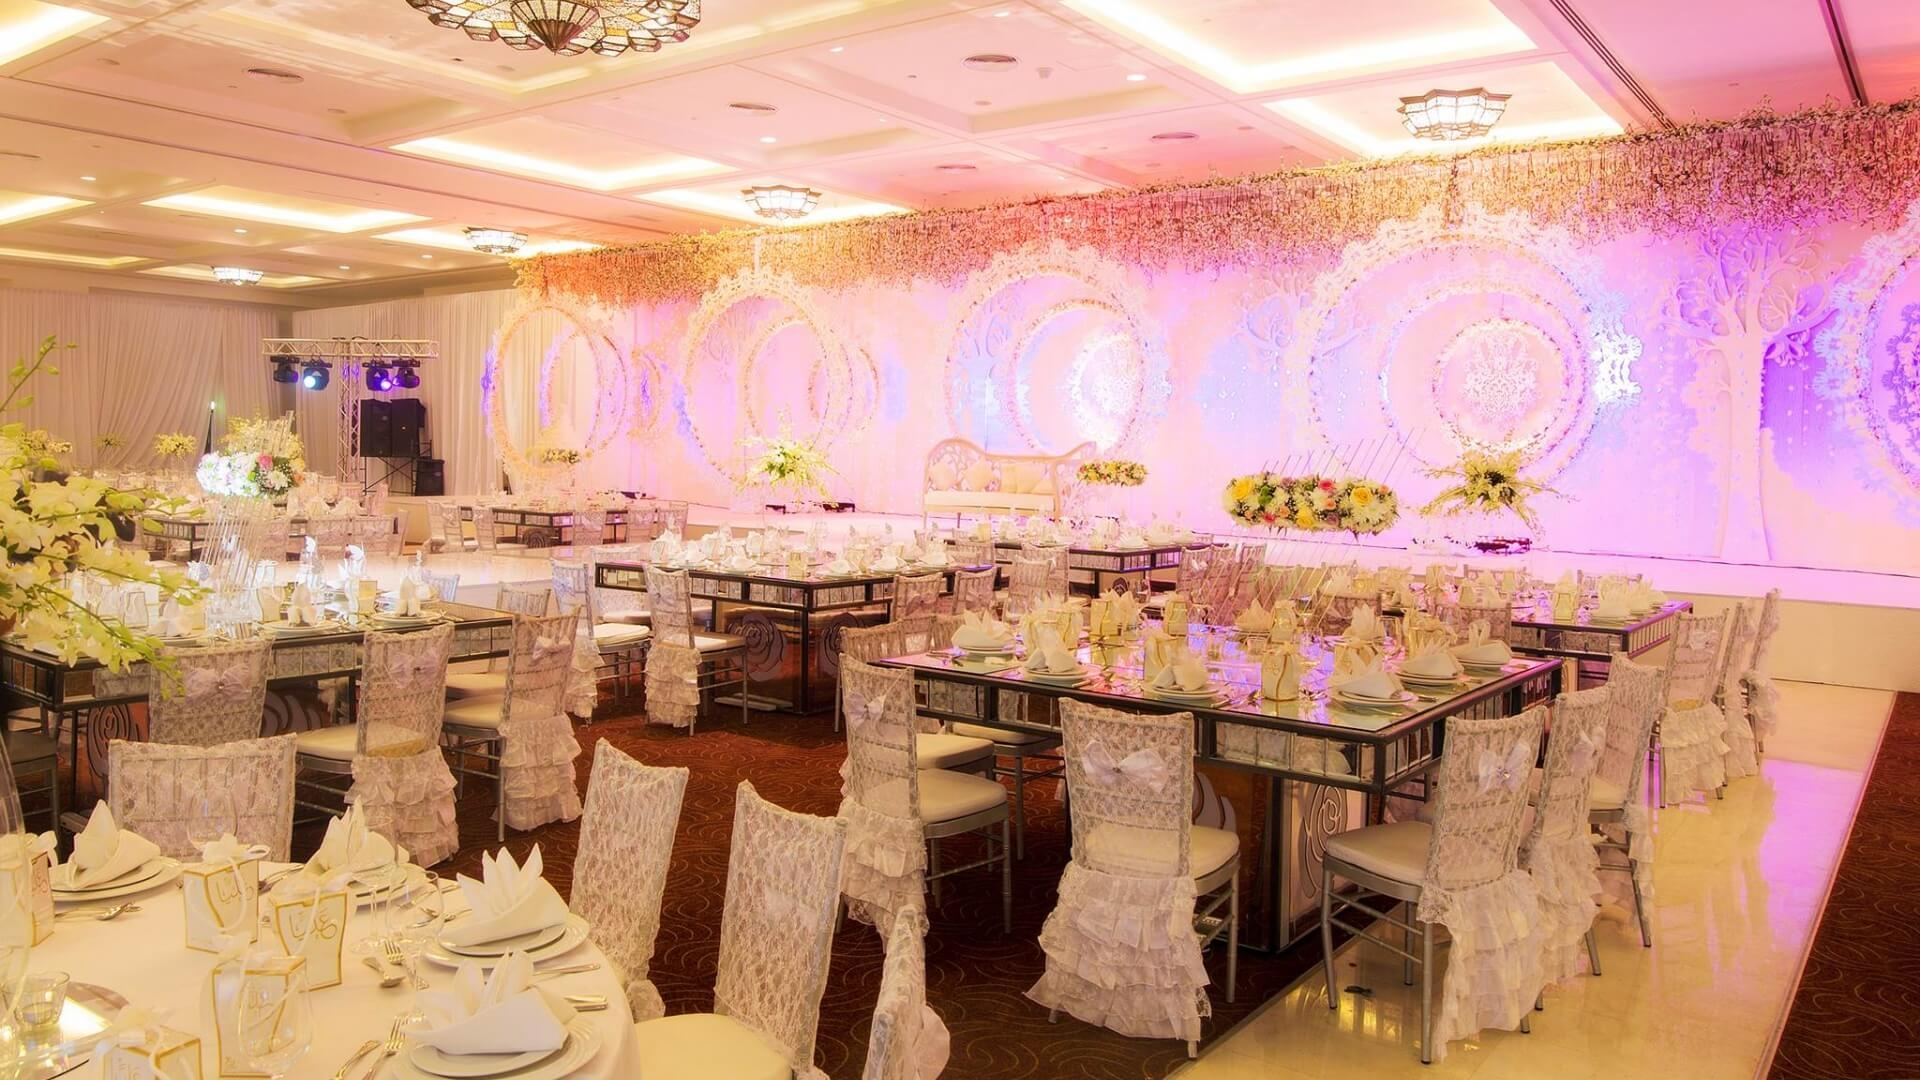 Bahi Ajman Palace Hotel Wedding Hall